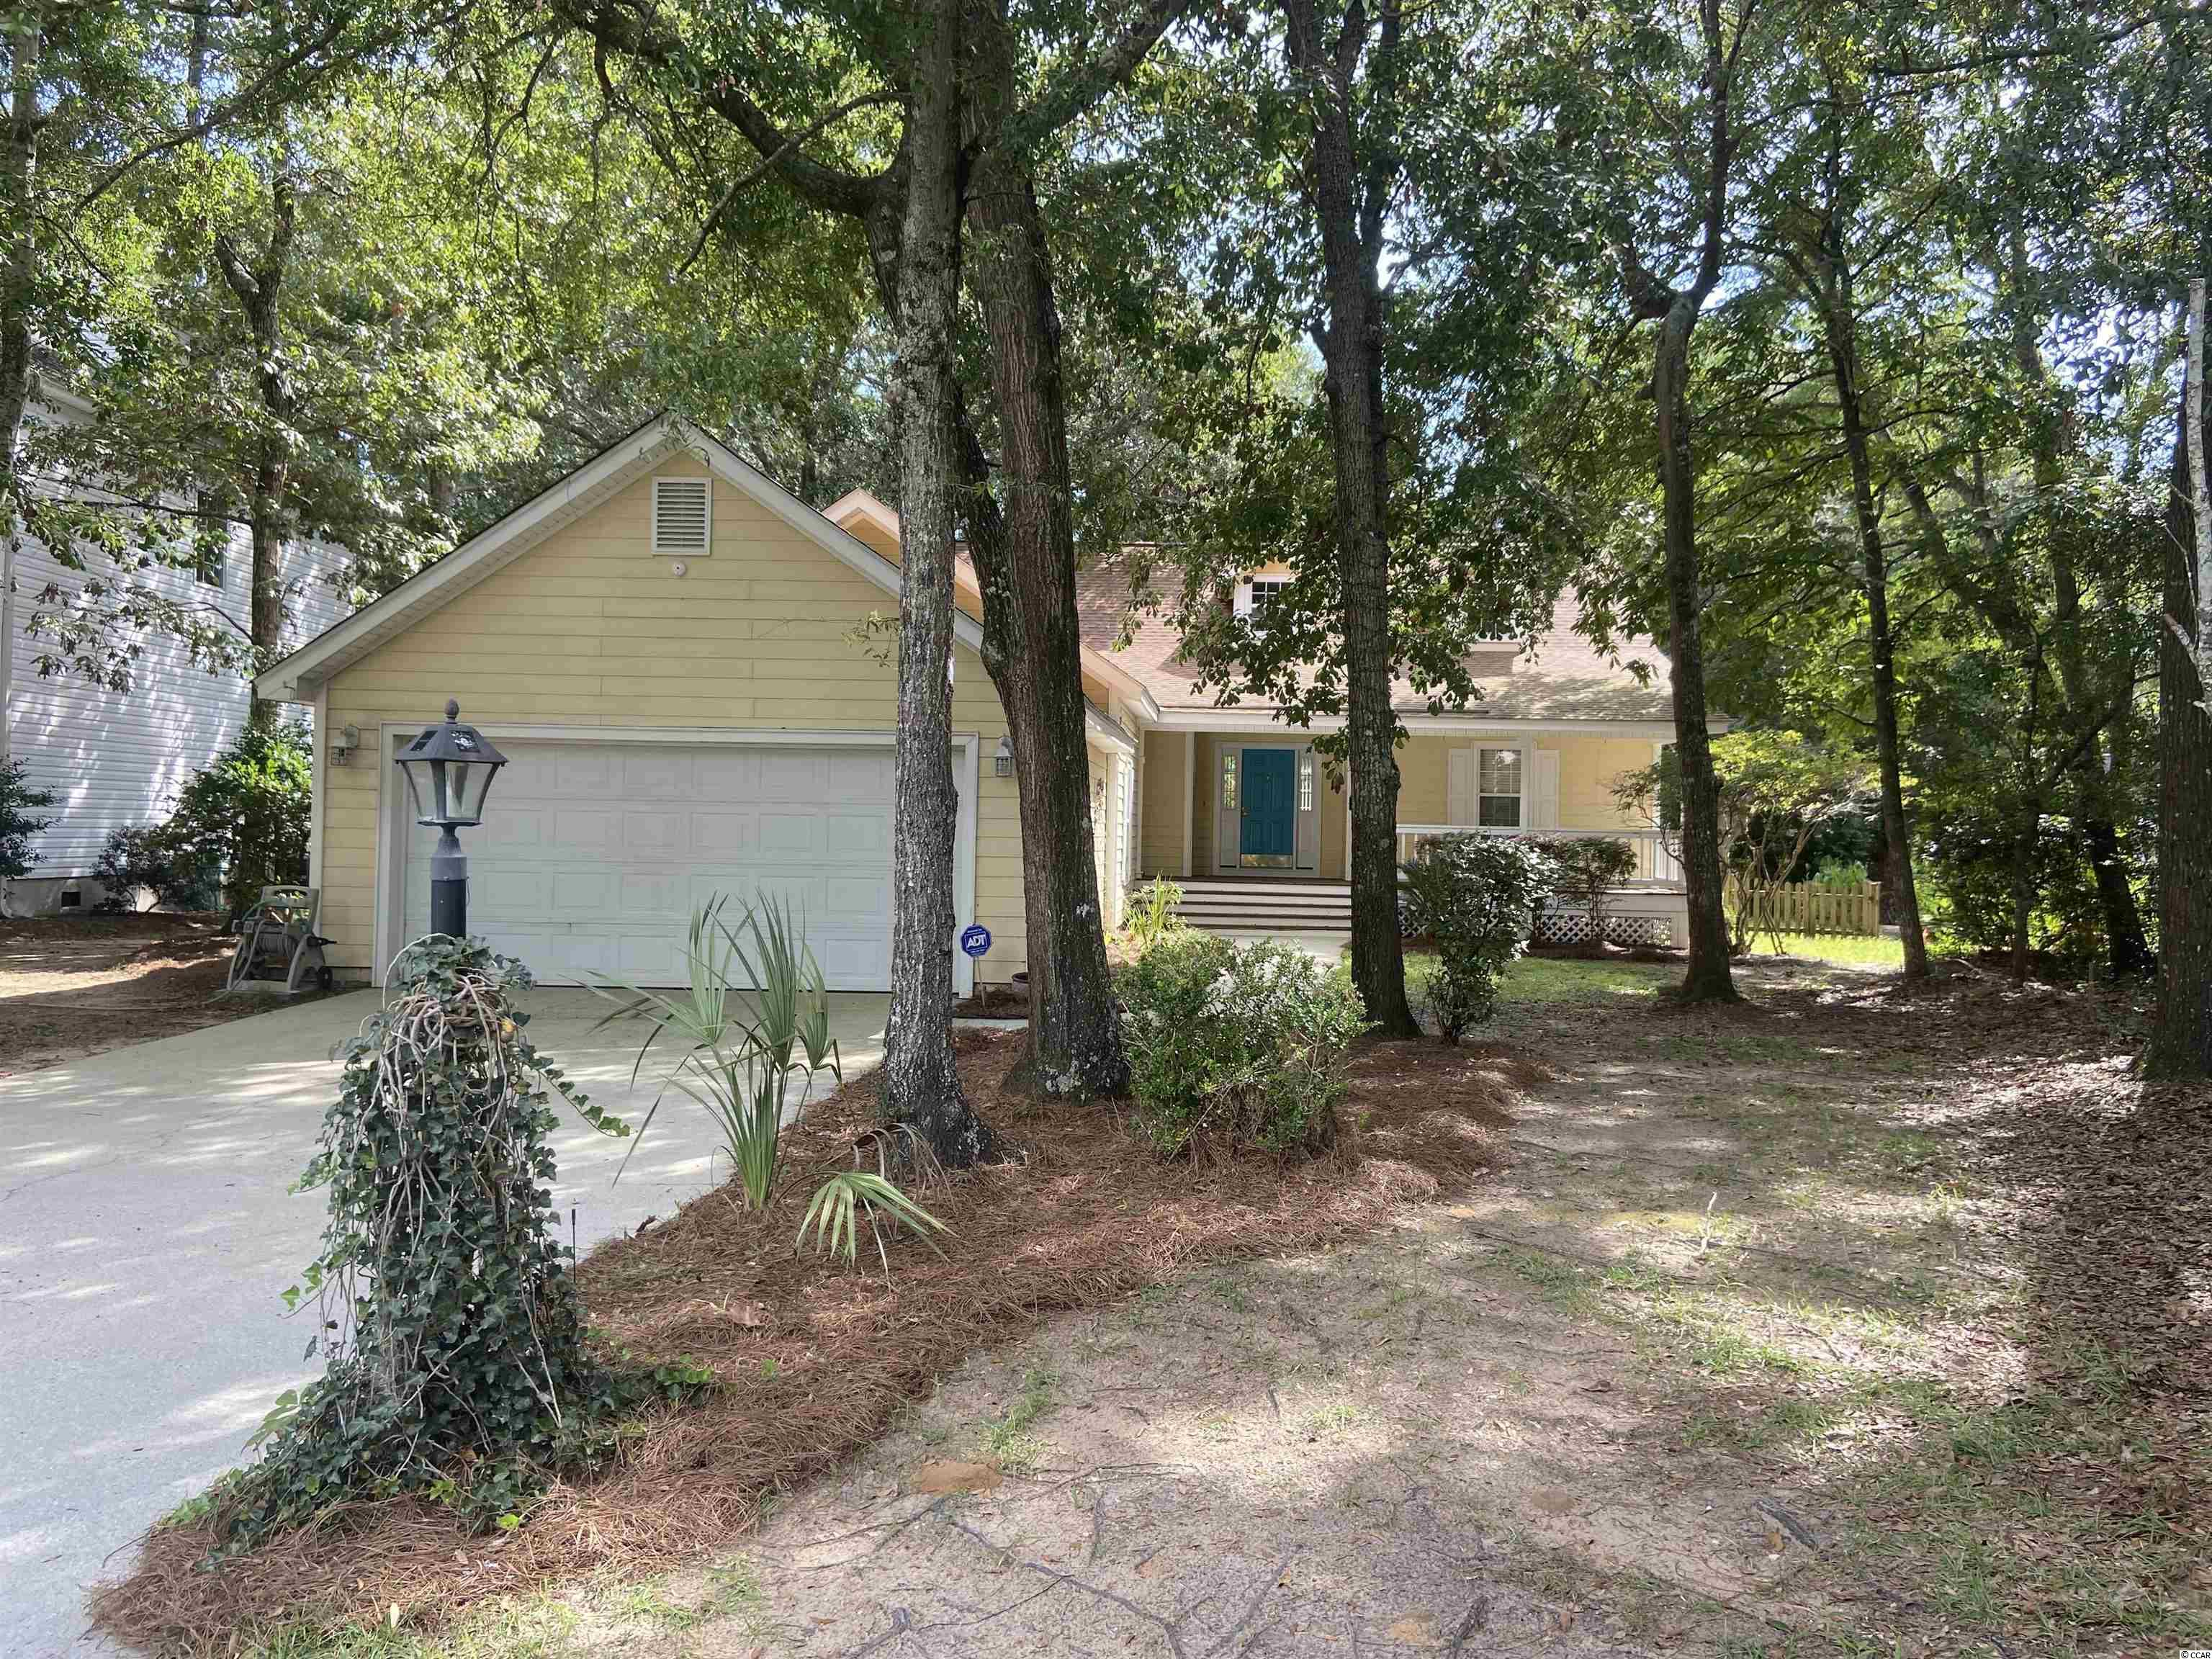 137 Voyagers Dr. Pawleys Island, SC 29585